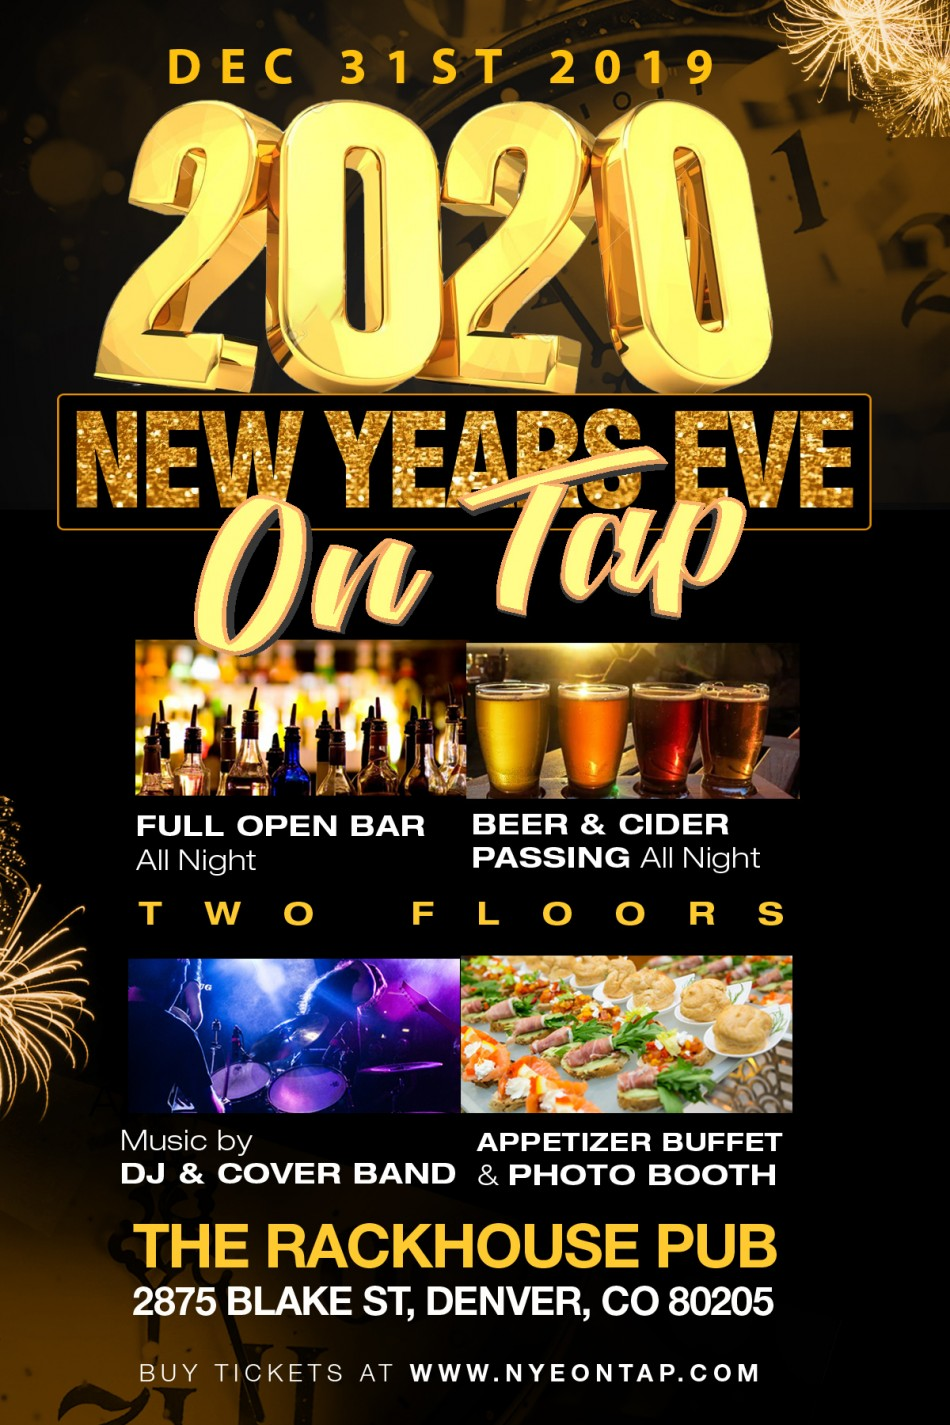 New Year's Eve On Tap